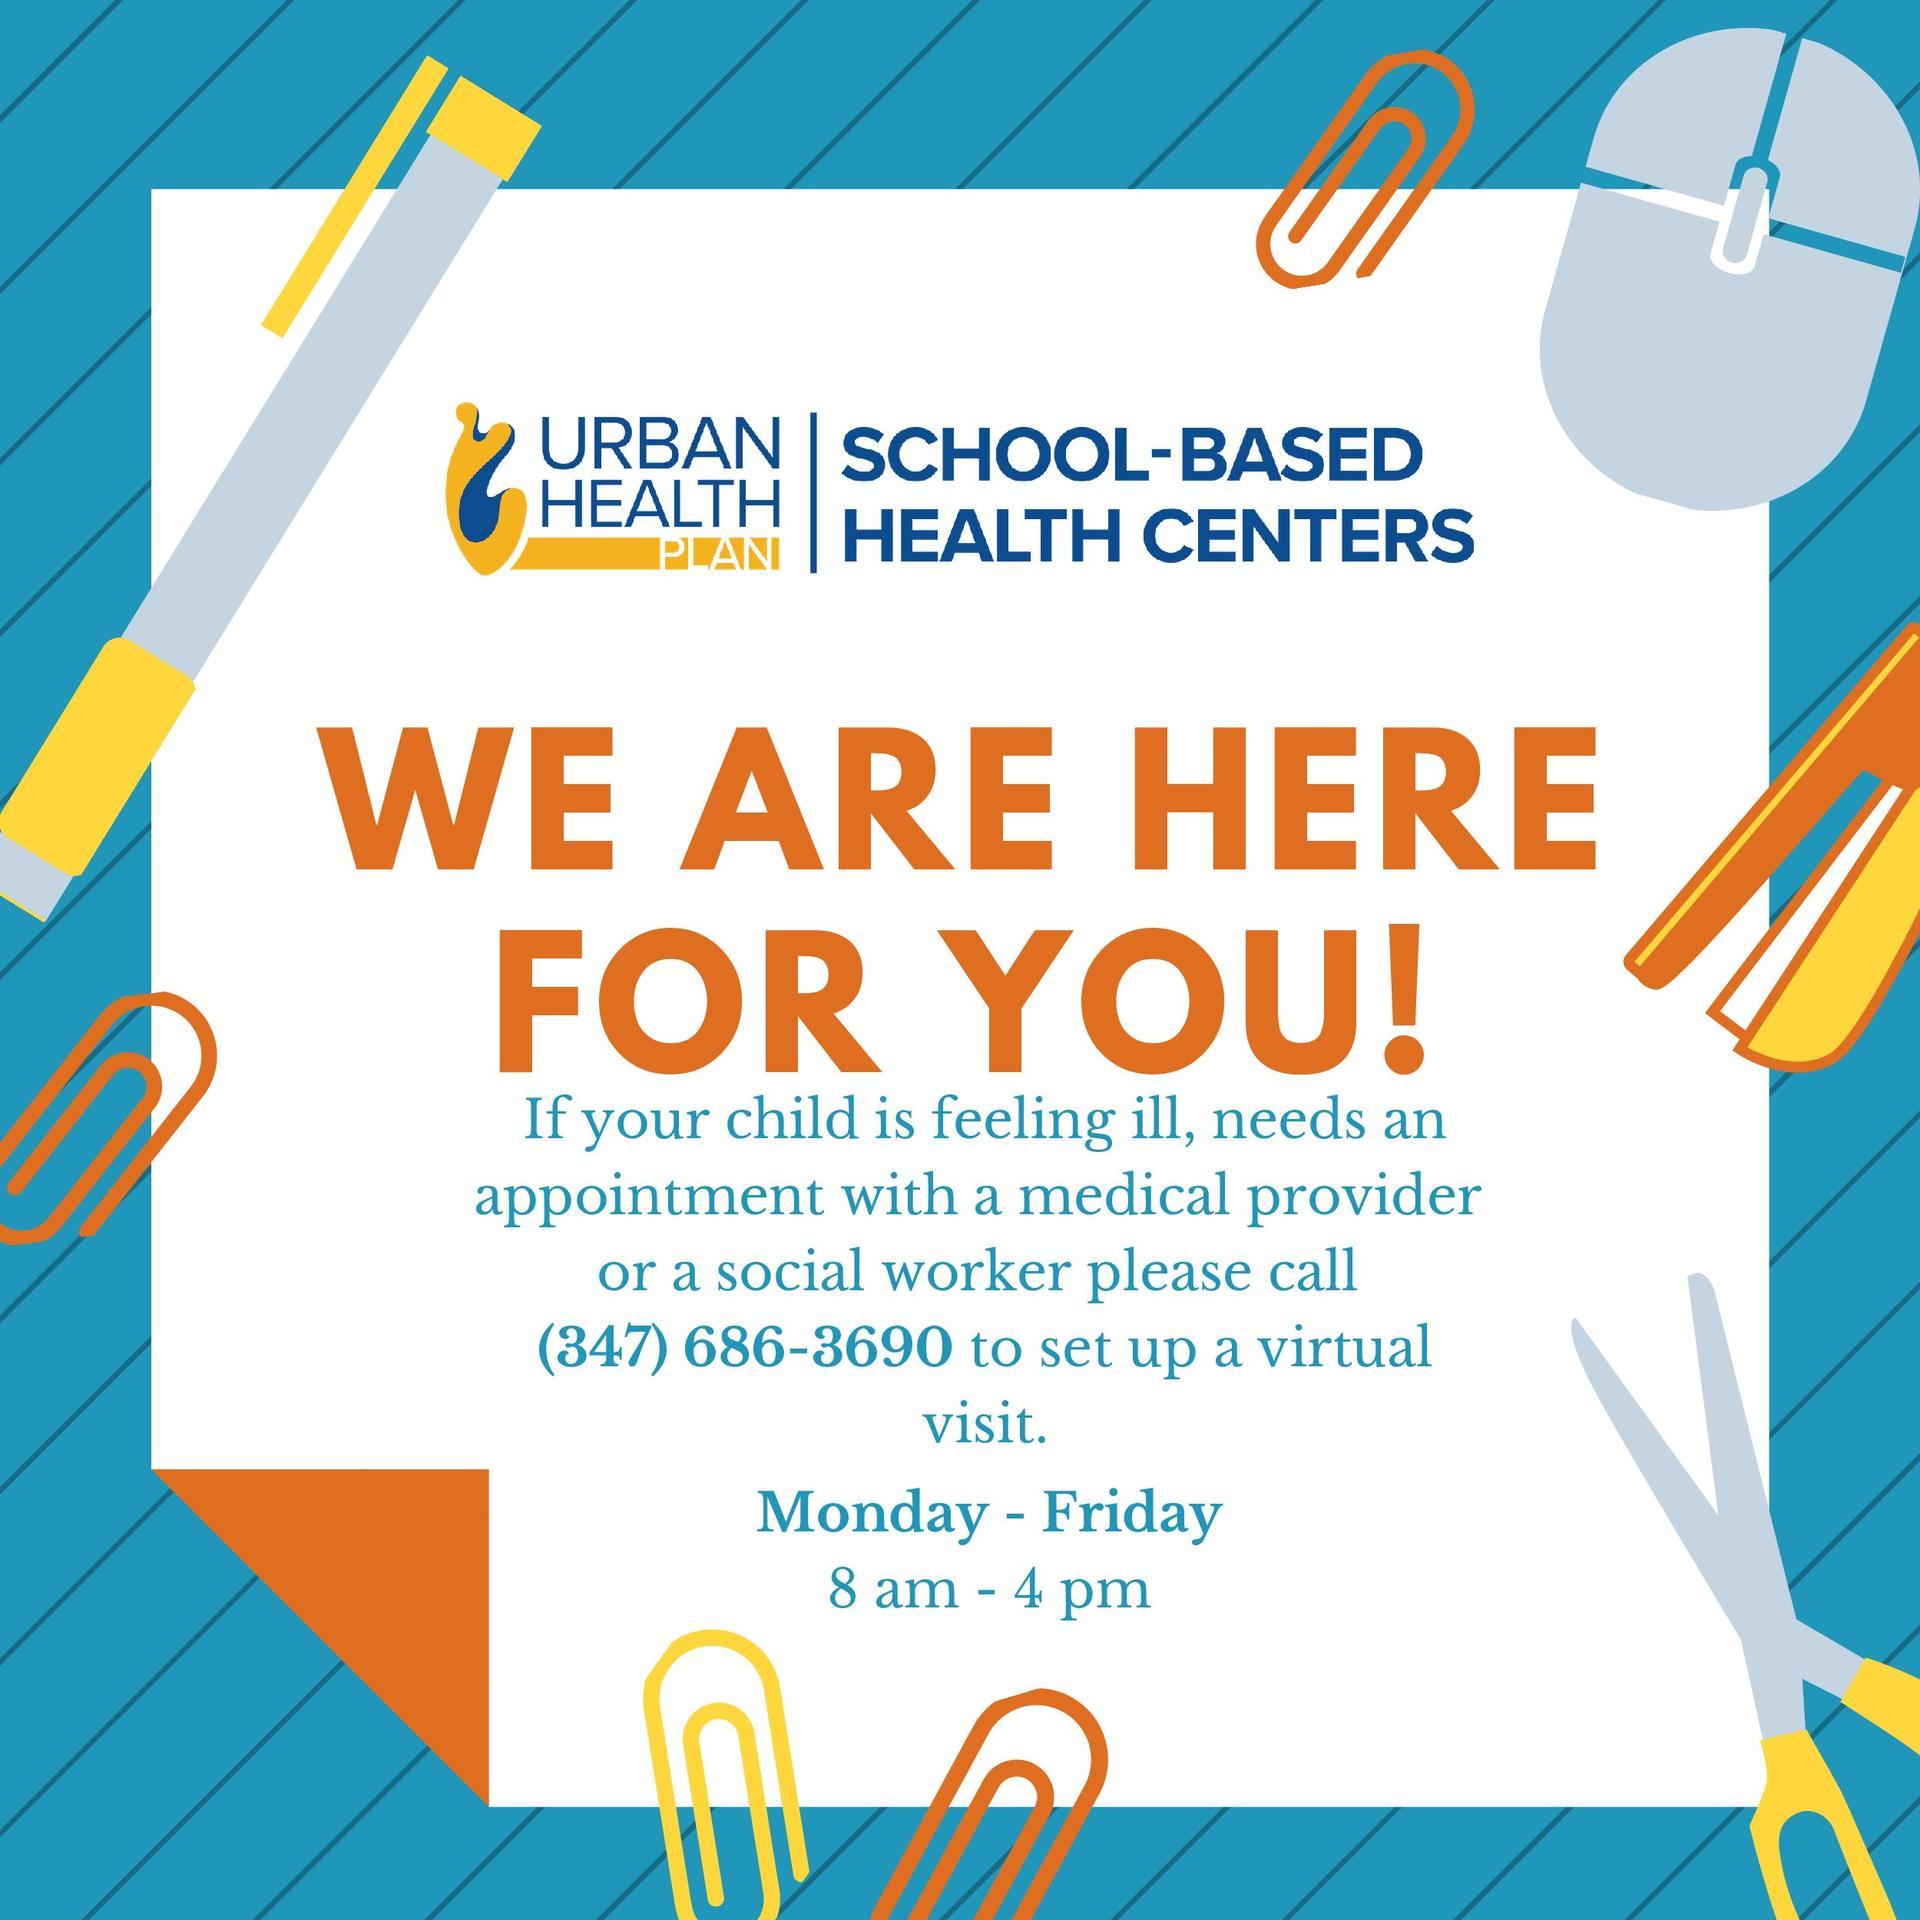 We are here for you! If you are feeling ill call 34796863690 to schedule an appointment.